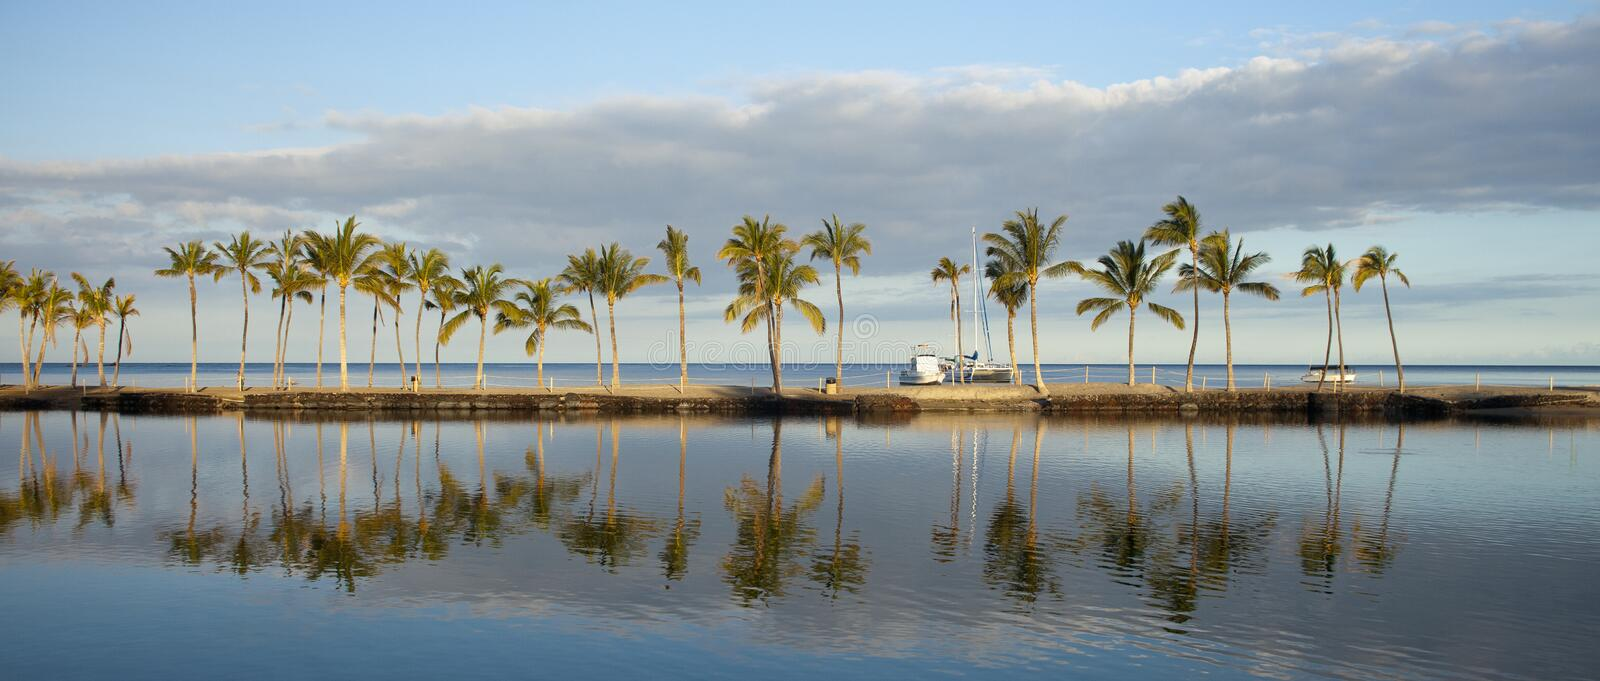 Download Tropical beach stock photo. Image of environmental, nature - 26600130